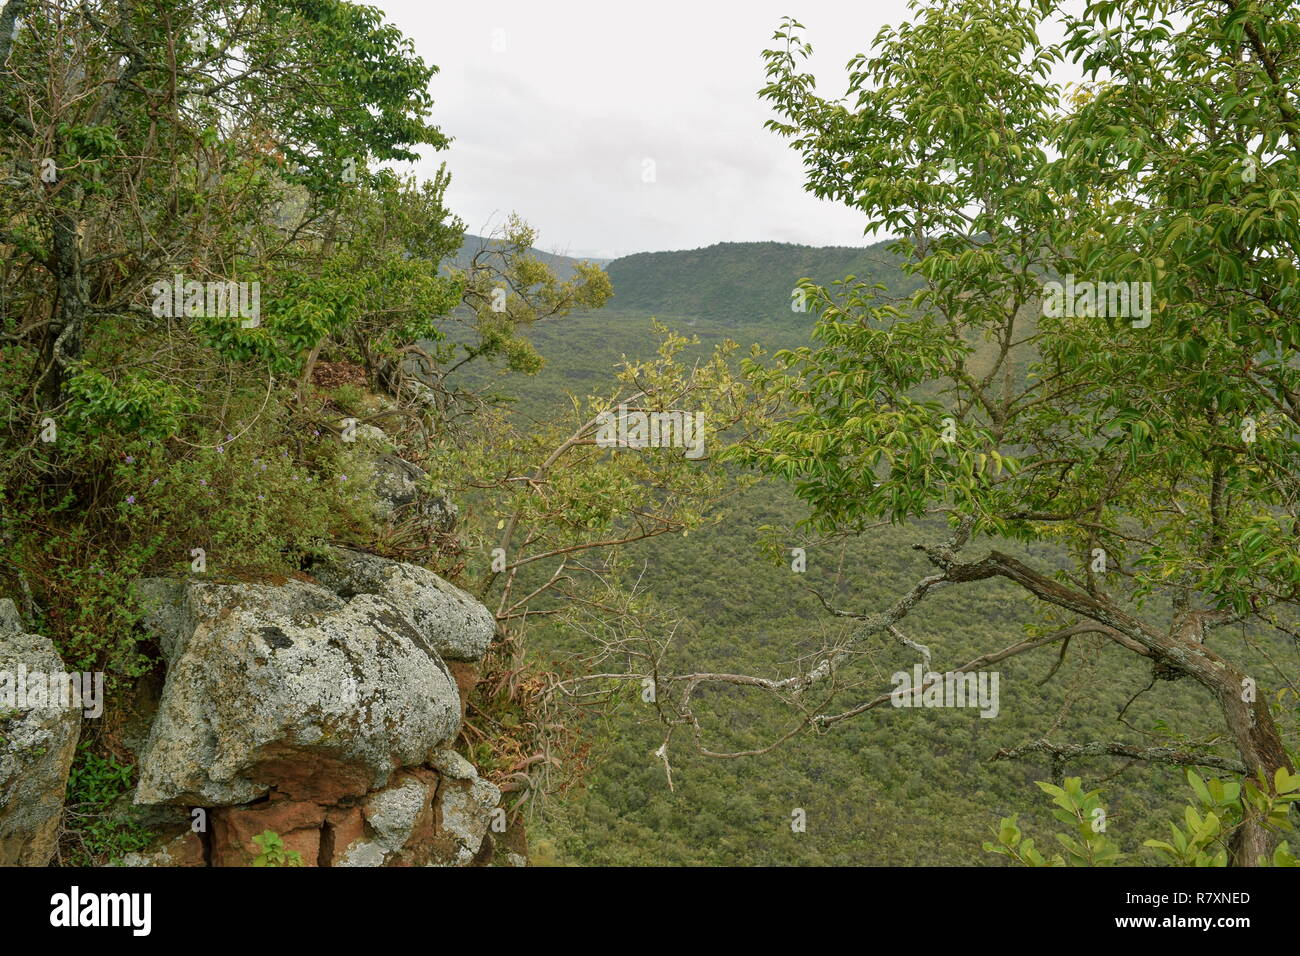 The volcanic crater at Mount Suswa, Rift Valley, KENYA Stock Photo